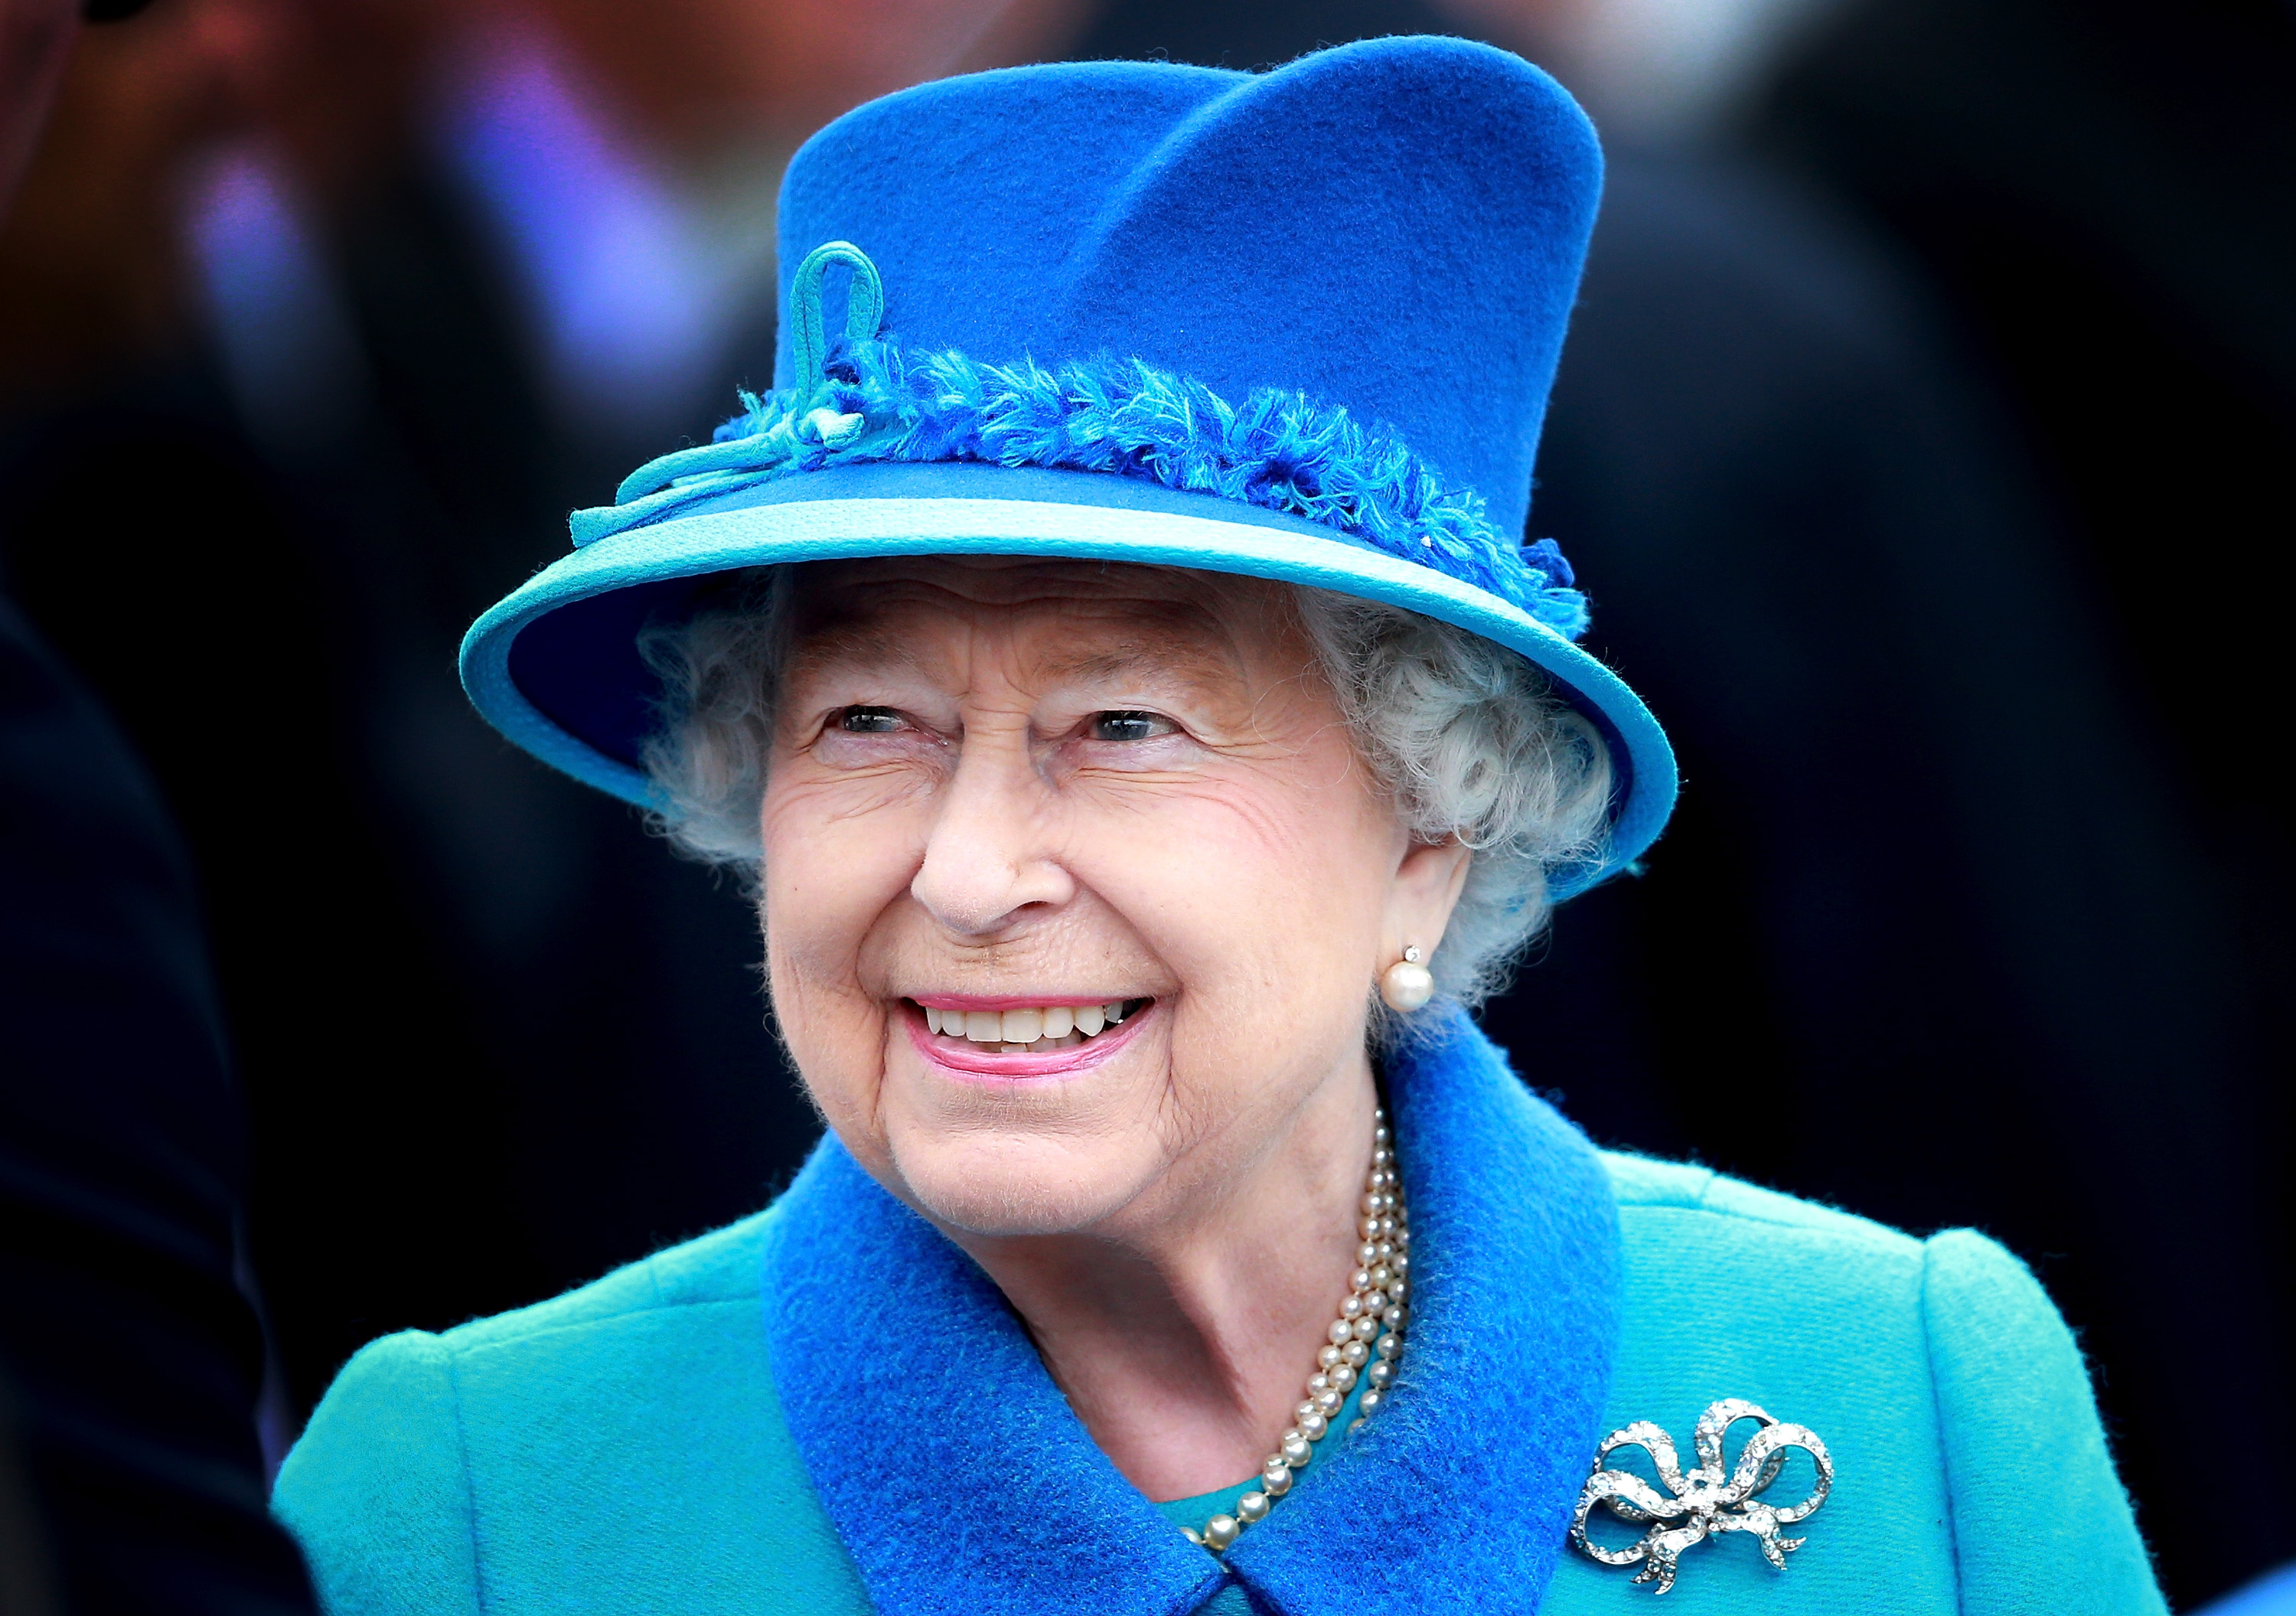 Queen Elizabeth II Becomes Britain's Longest Reigning Monarch